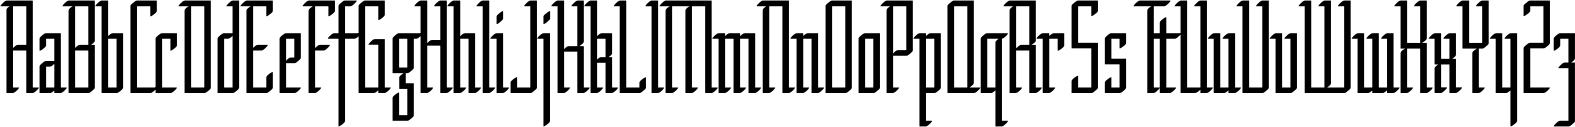 Psalta Regular Font